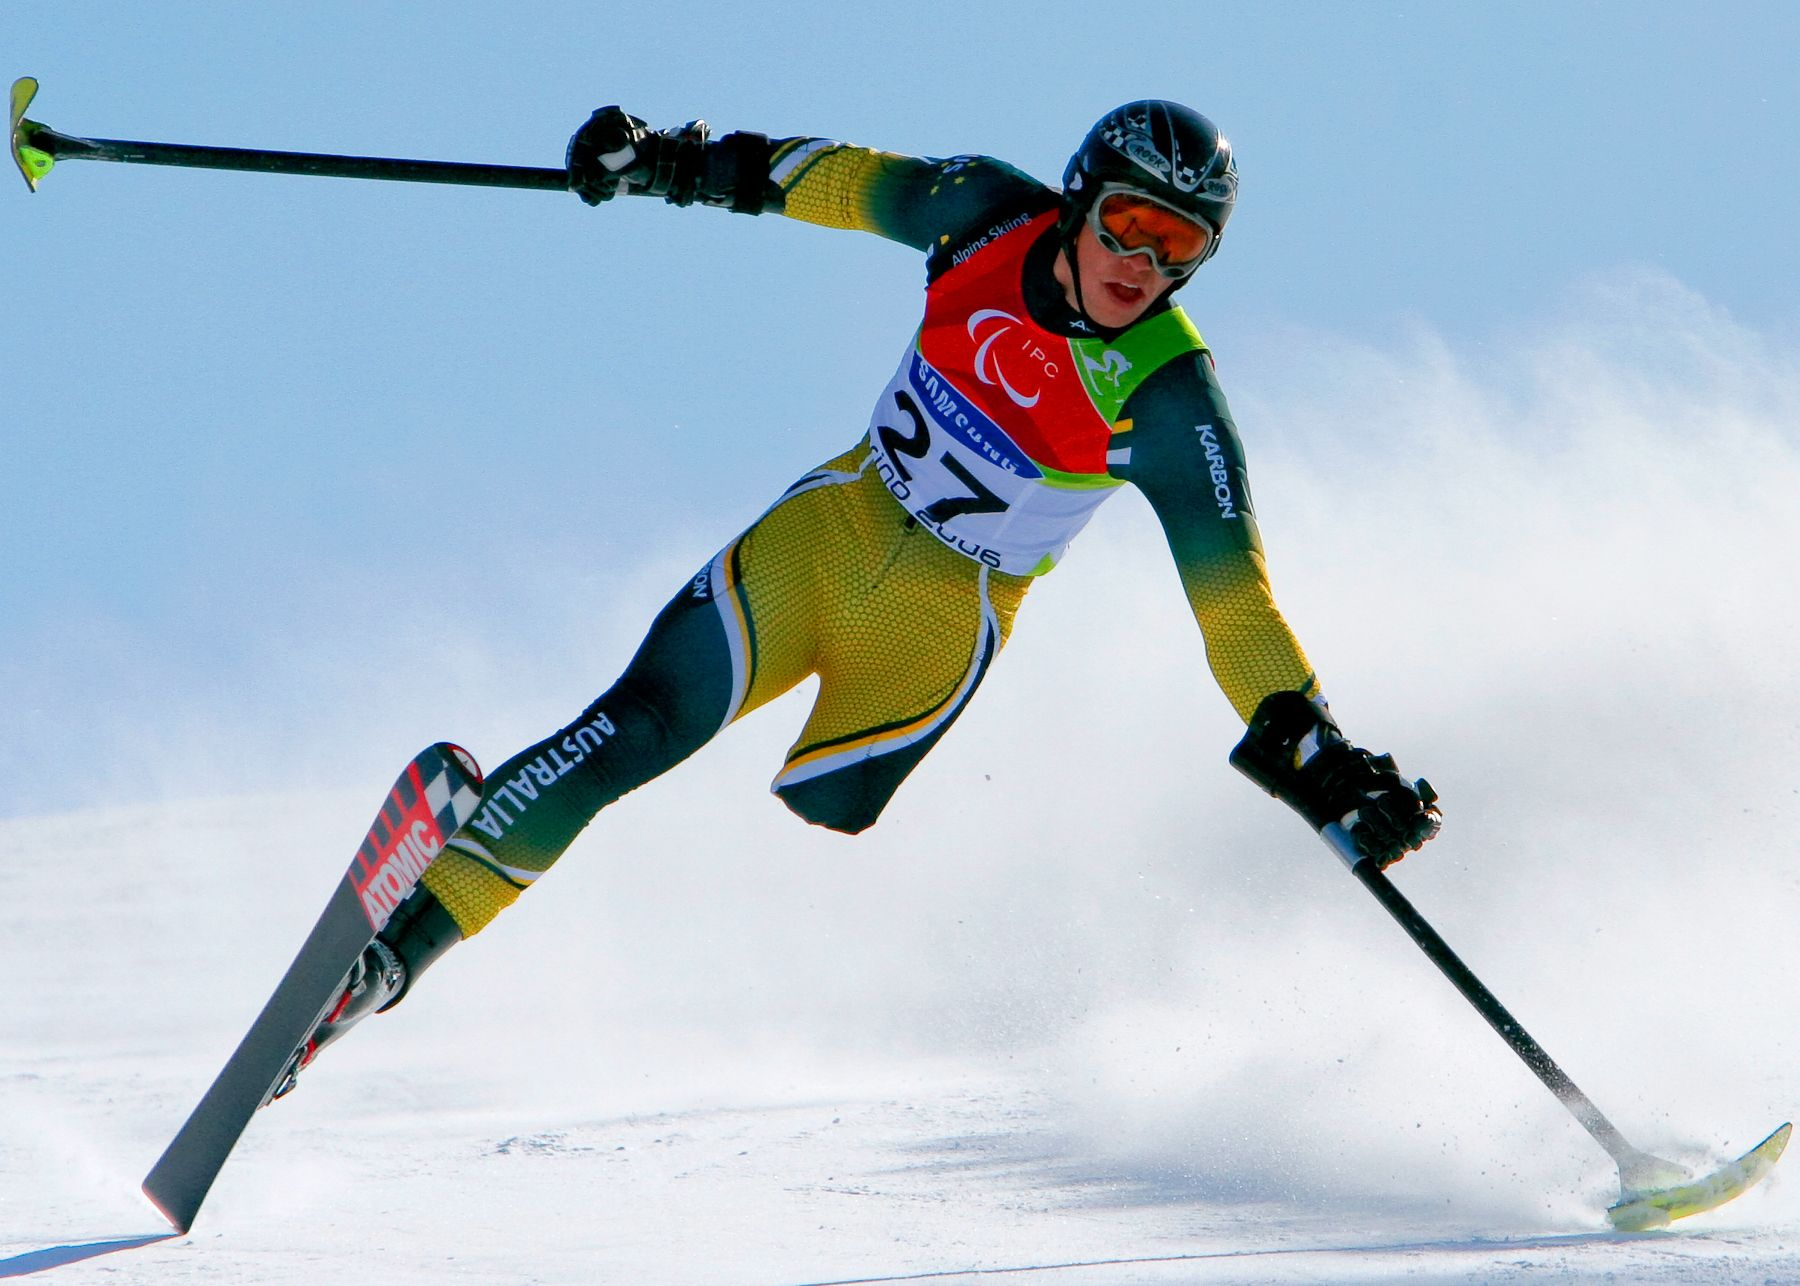 Let the Paralympic Games Begin Athlete, Skiing, Alpine